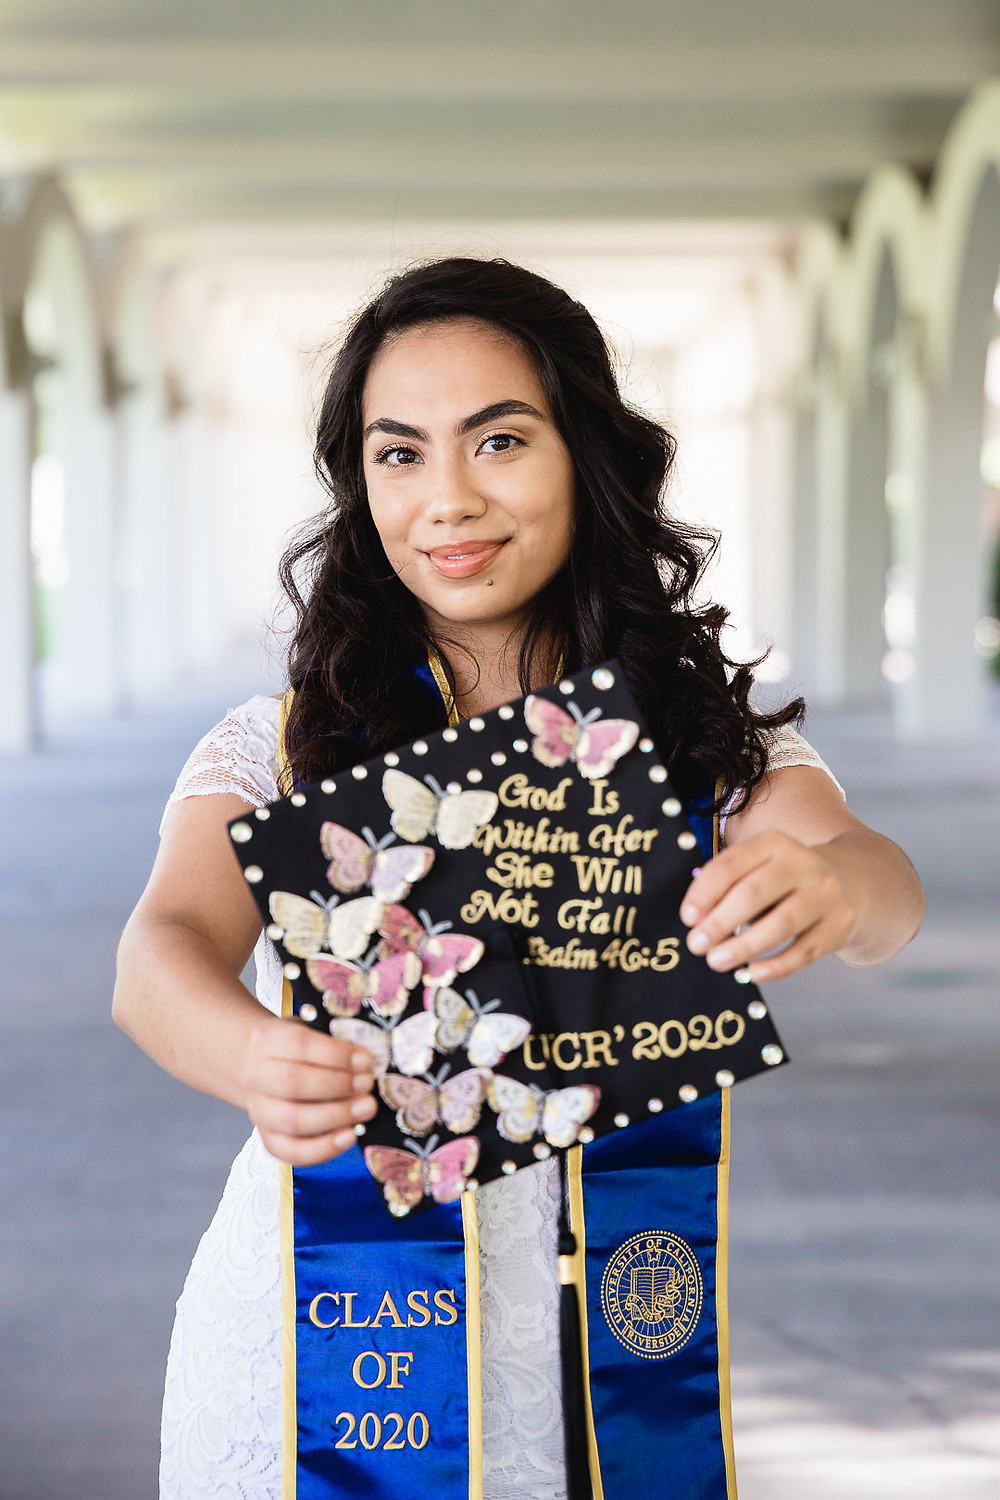 University of California Riverside Graduation Photos | Ashley 1